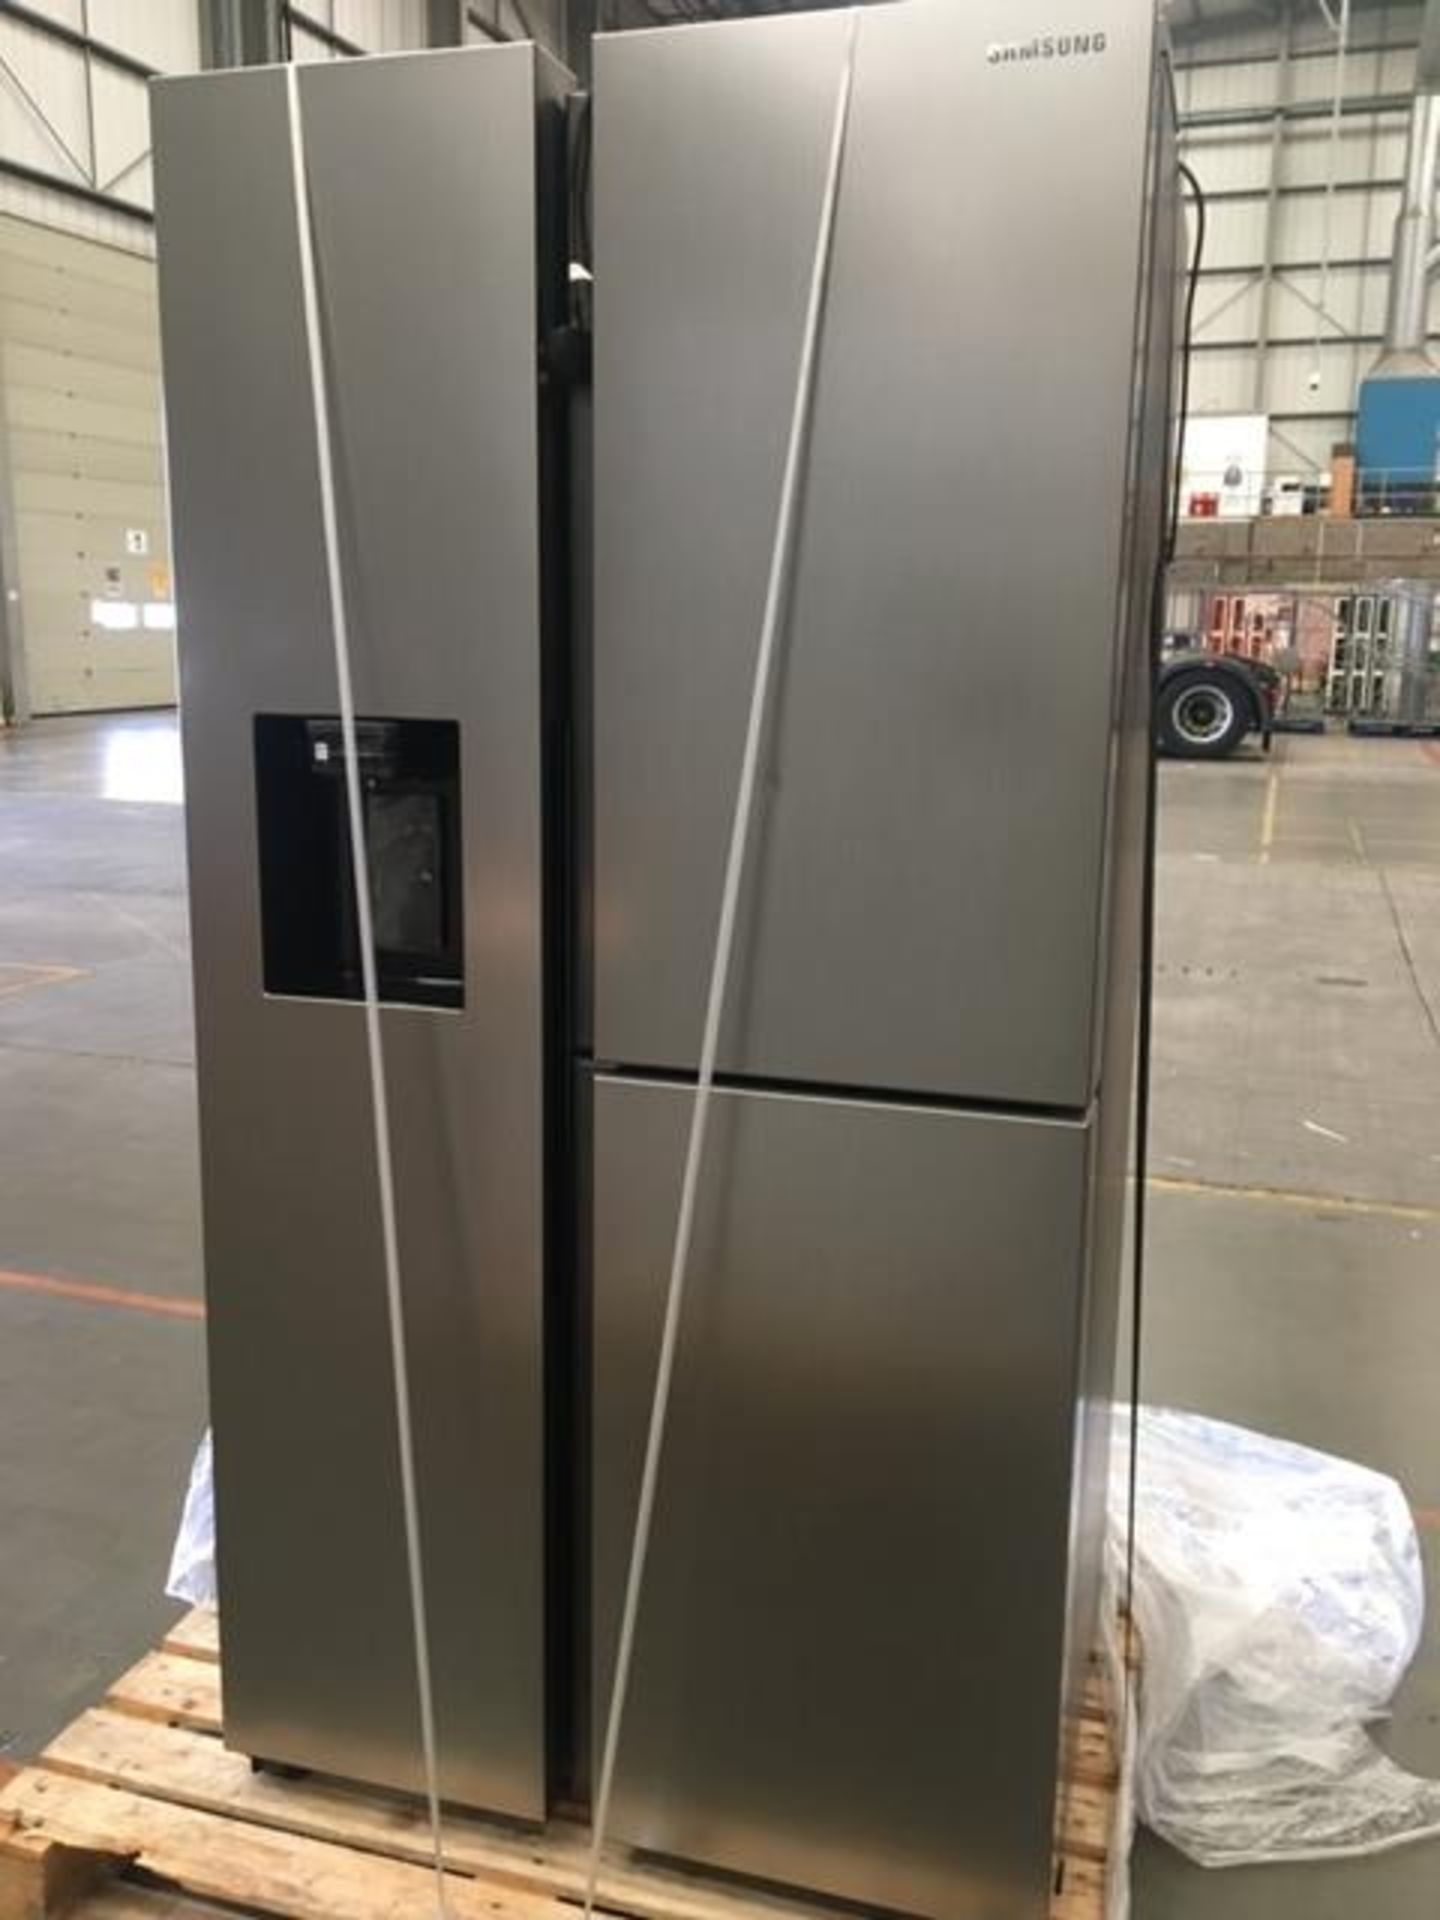 Pallet of 1 Samsung Water & Ice Fridge freezer. Latest selling price £1,769.99* - Image 10 of 10